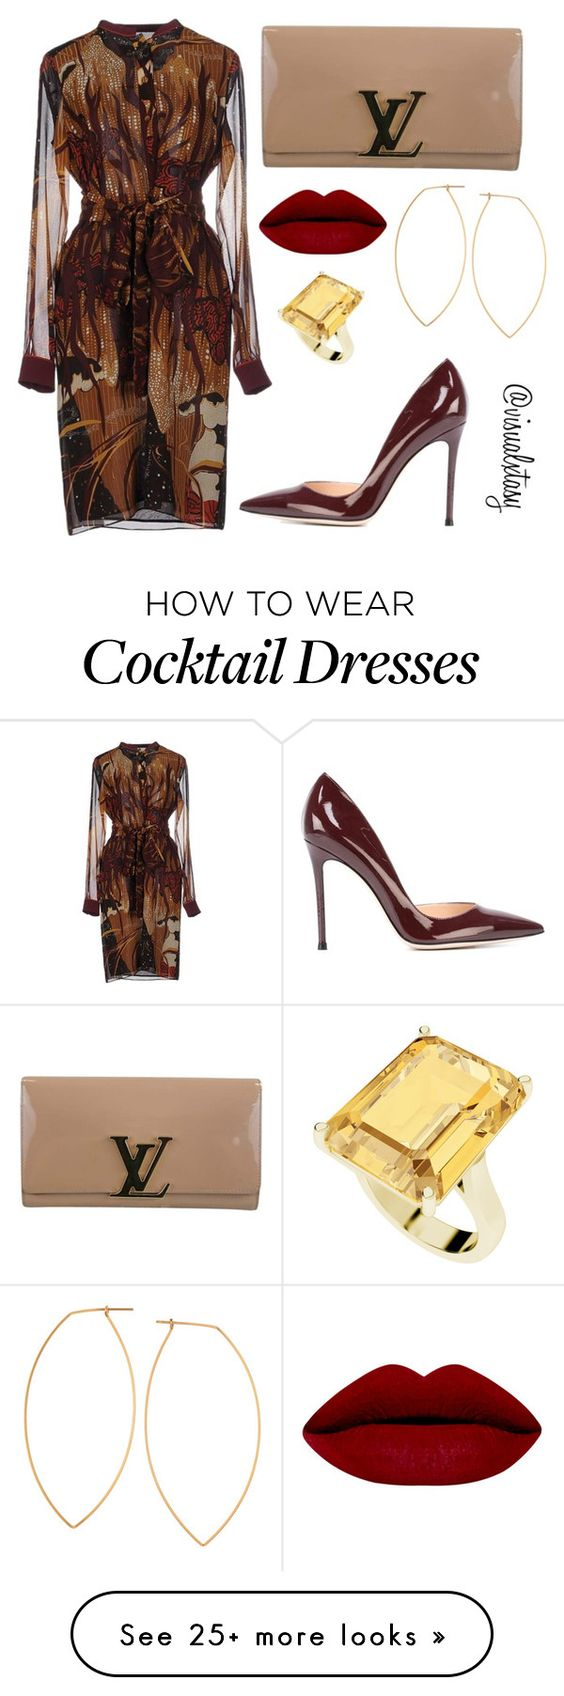 """""""Slight Work II"""" by visualxtasy on Polyvore featuring Gucci, By Philippe, Gianvito Rossi, StyleRocks, Louis Vuitton, women's clothing, women's fashion, women, female and woman"""